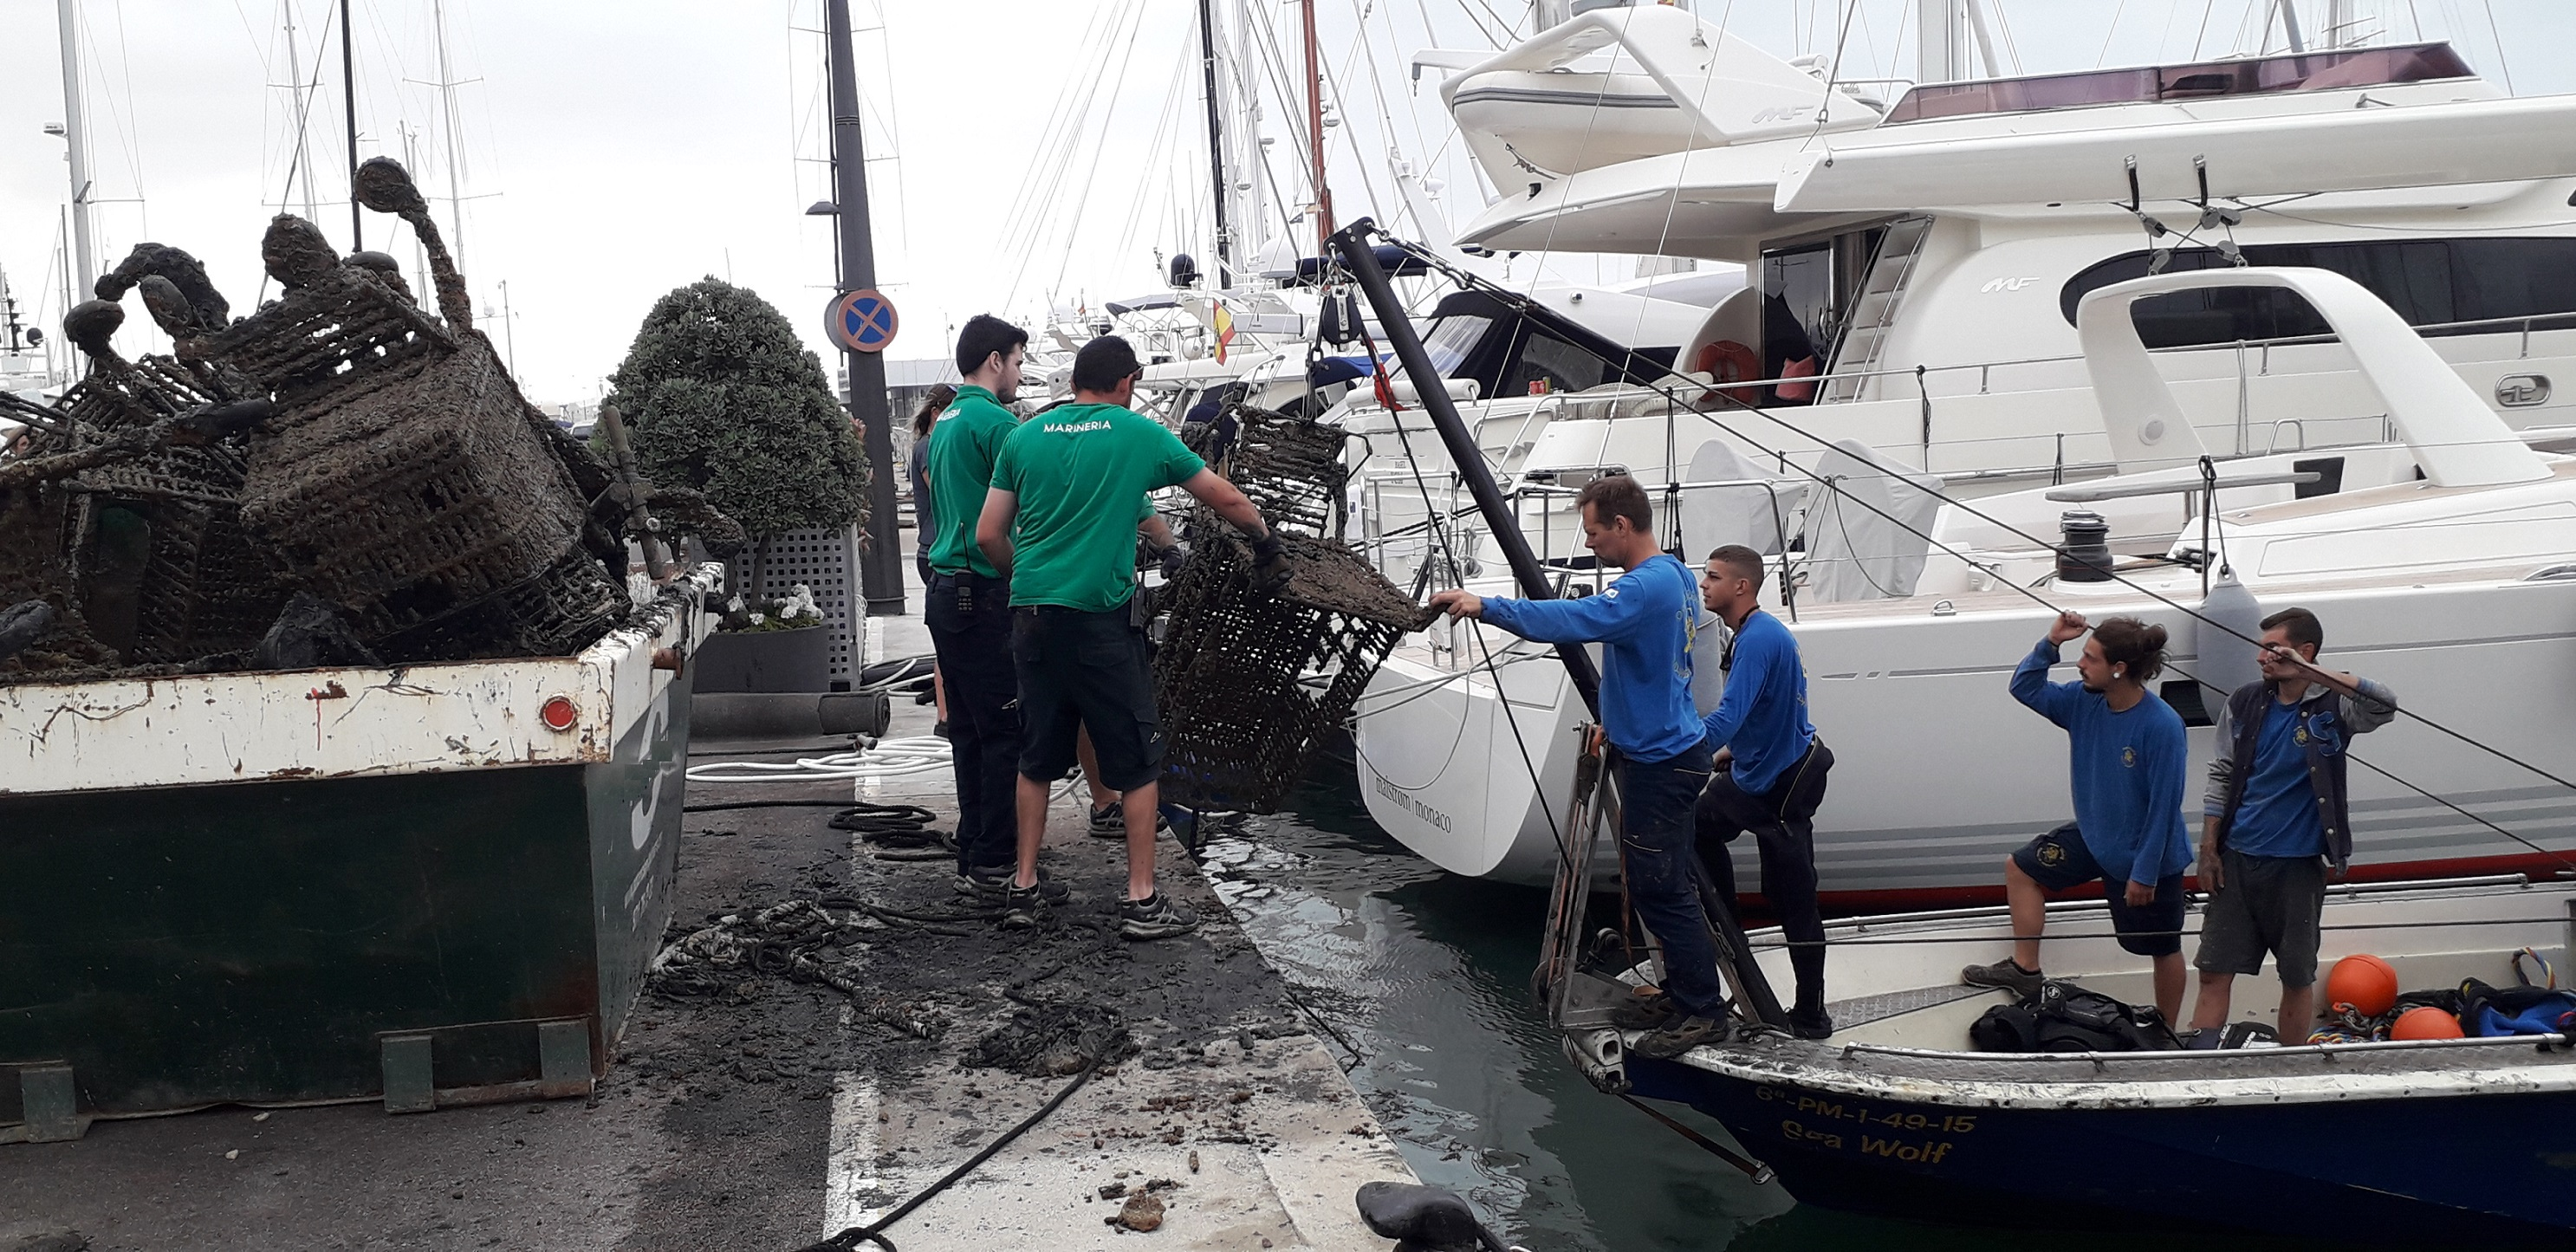 Marina Port de Mallorca and Marina Palma Cuarentena declare war on waste hiding under the sea